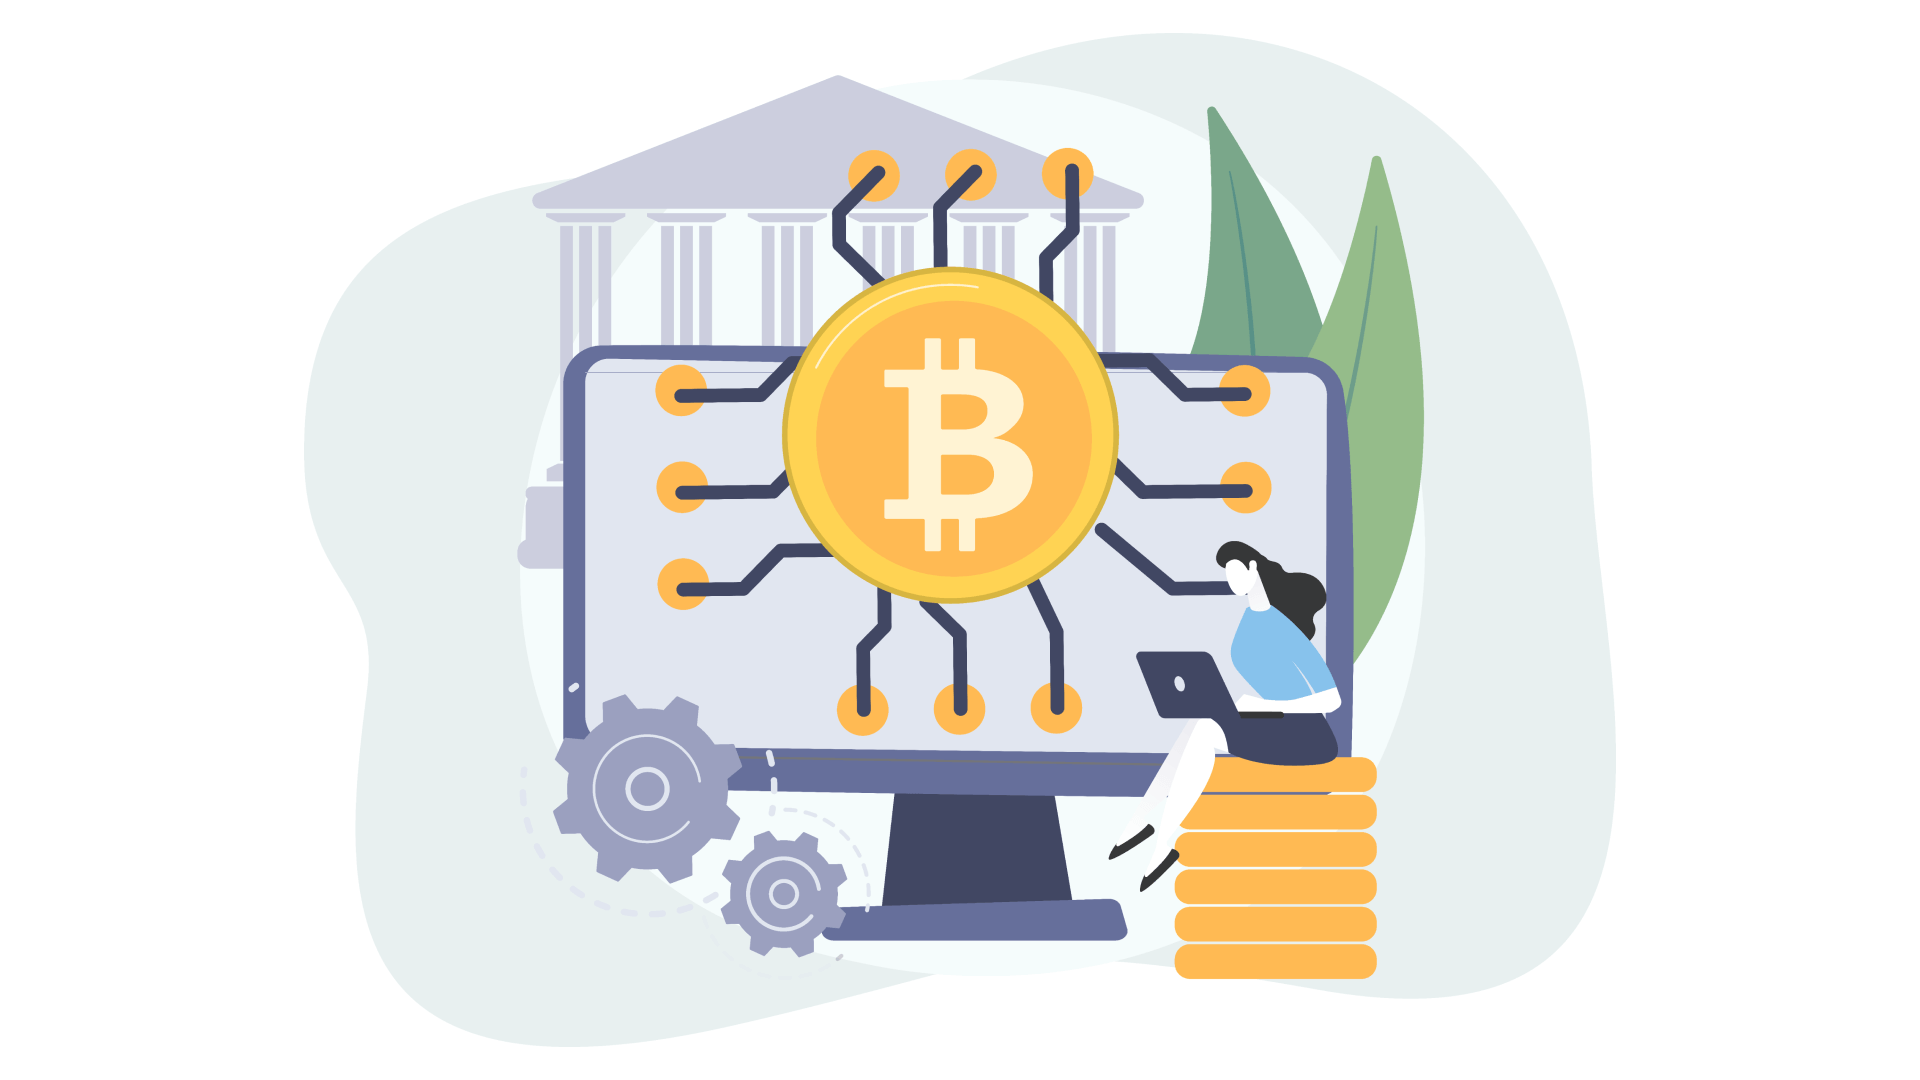 Understanding how blockchain NFT marketplace functions. A step-by-step guide on how to create an NFT marketplace.